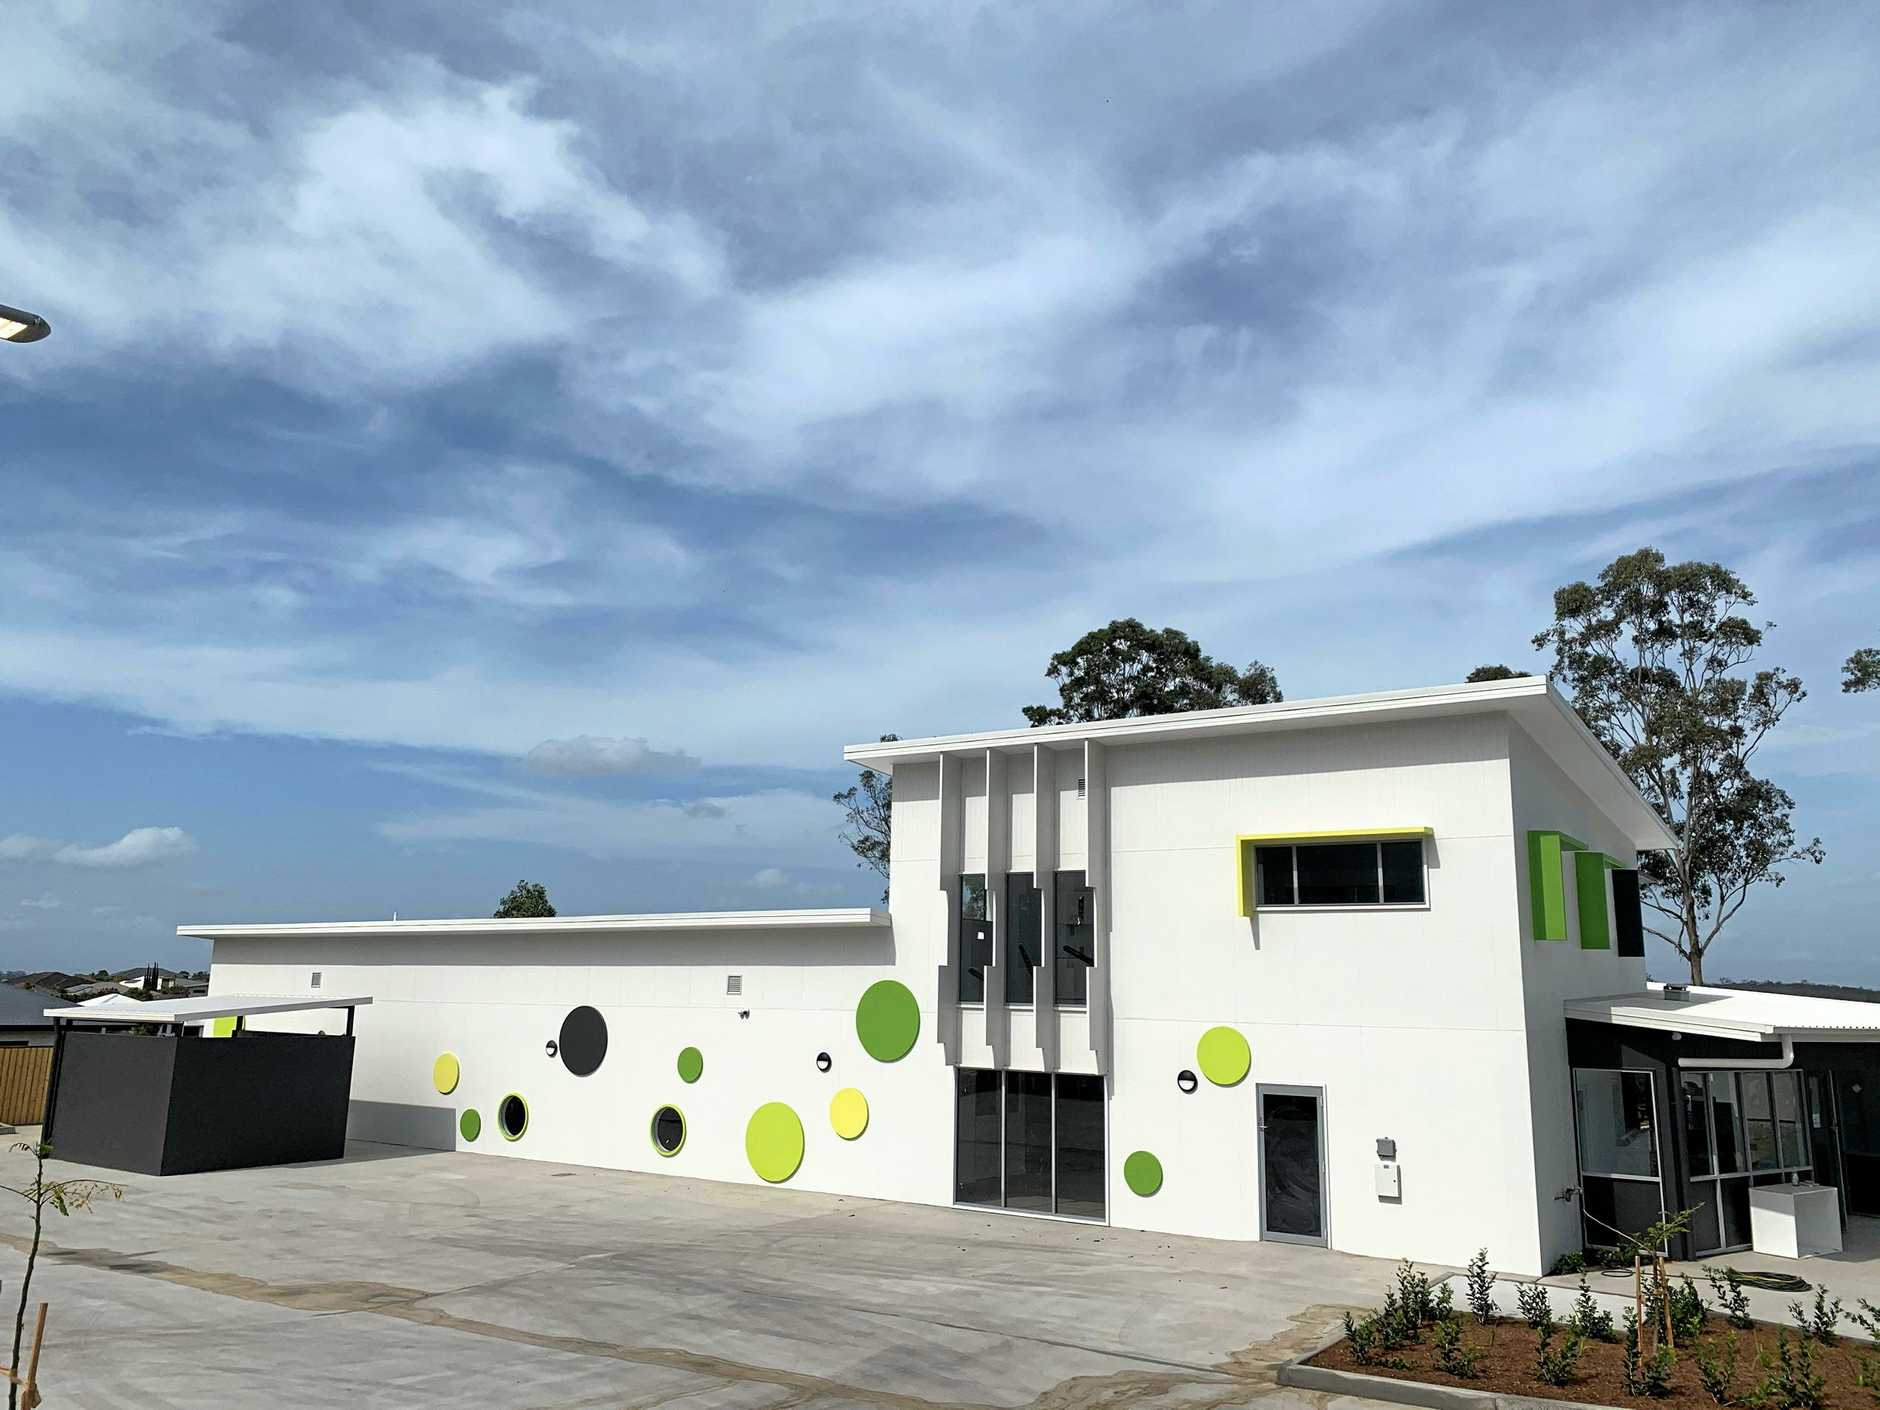 The new Edge Early Learning Centre in Bellbird Park, which will open in January 2020.